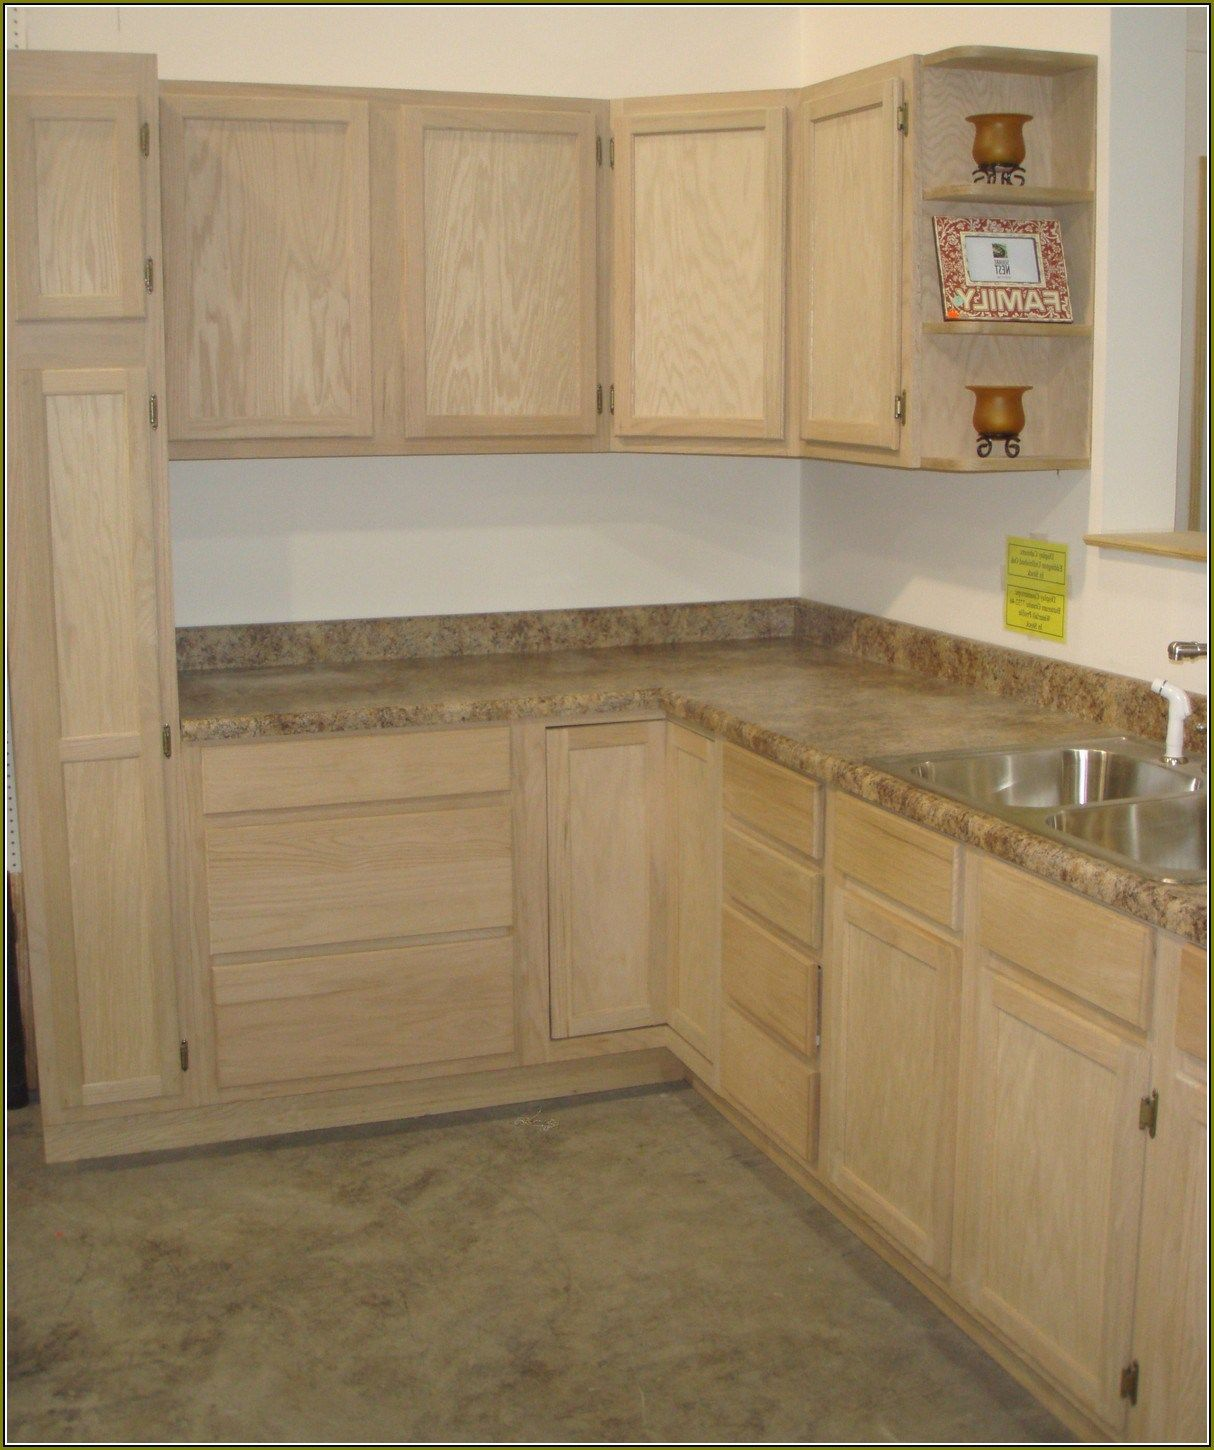 kitchen cabinets home depot home improvements refference unfinished pine cabinets home depot kitchen cabinets assemble home depot lowes kitchen cabinets